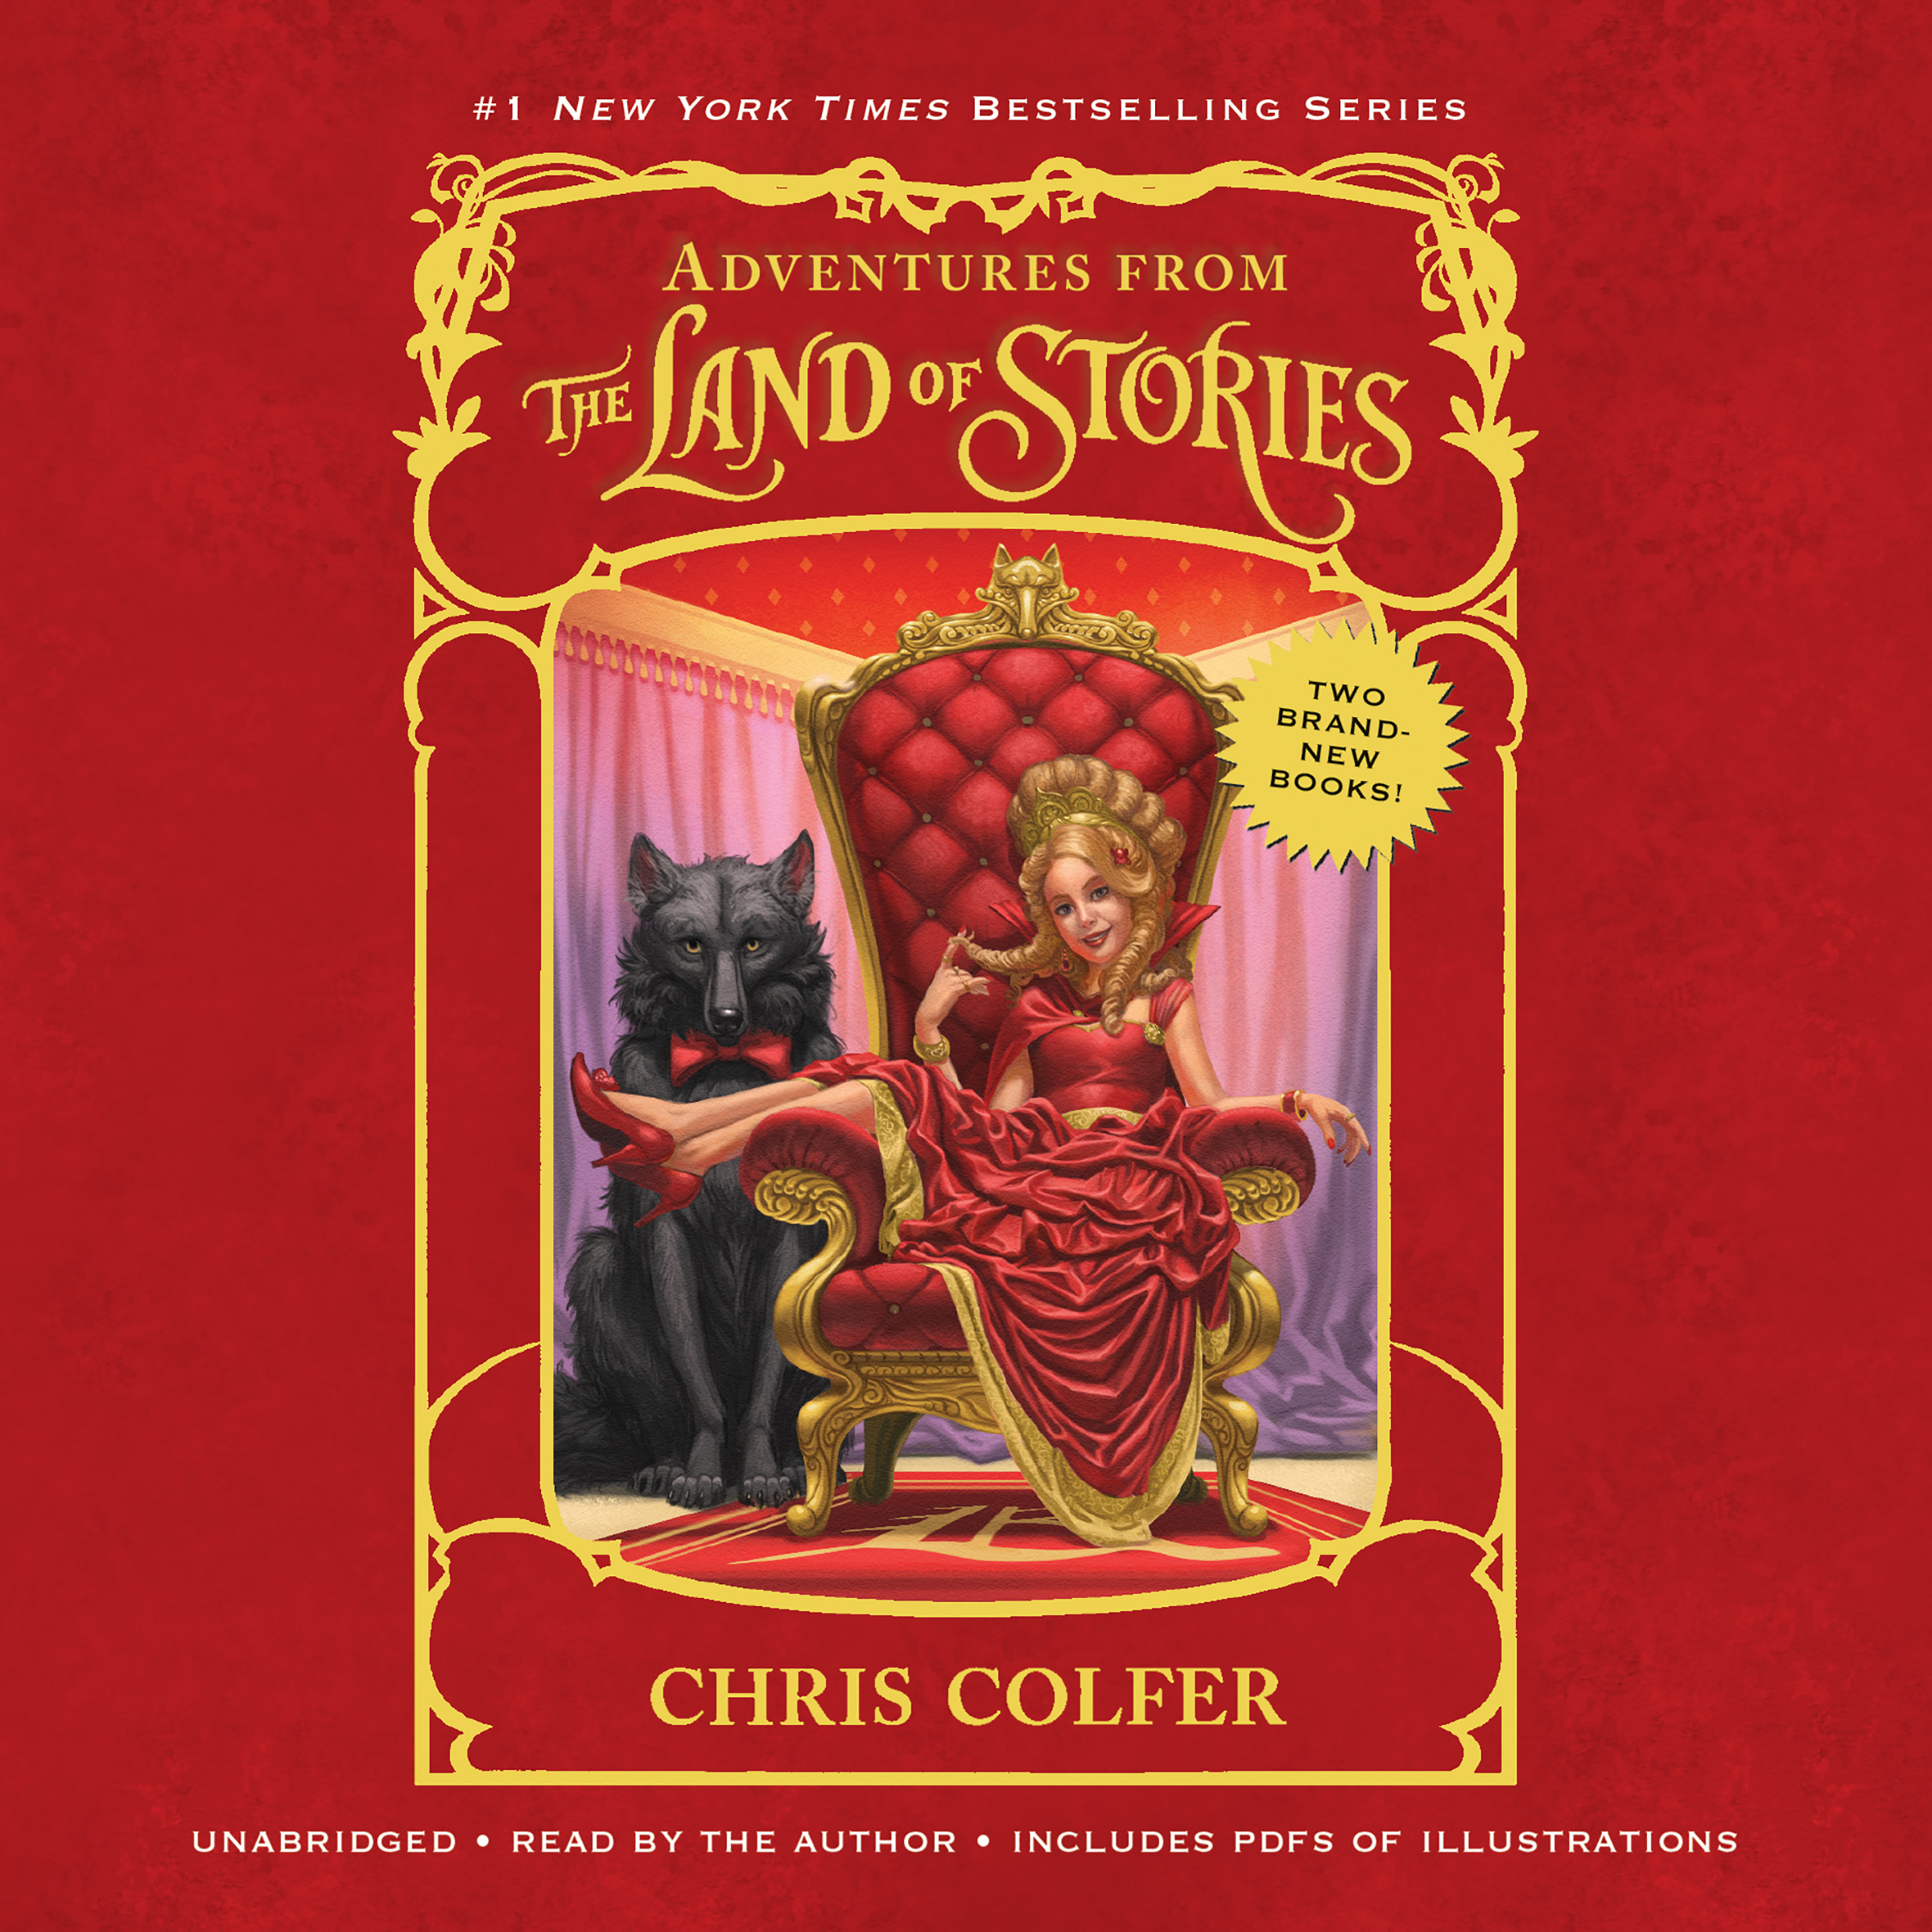 Printable Adventures from the Land of Stories Boxed Set: The Mother Goose Diaries and Queen Red Riding Hood's Guide to Royalty Audiobook Cover Art